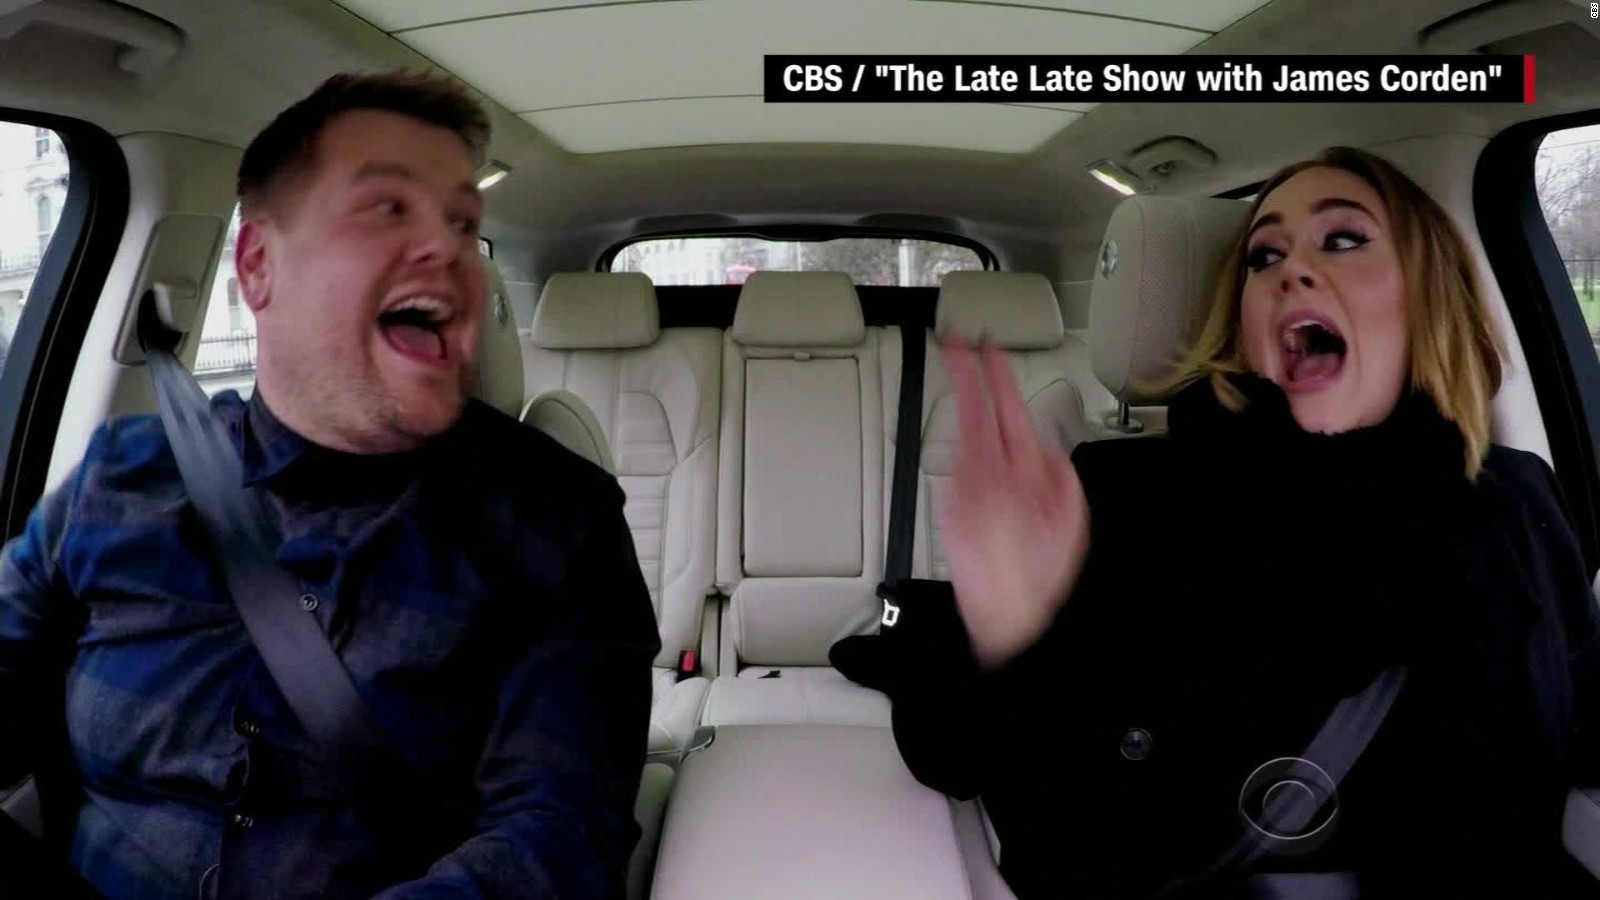 Adele Just Nailed Carpool Karaoke in This Late Late Show'Video